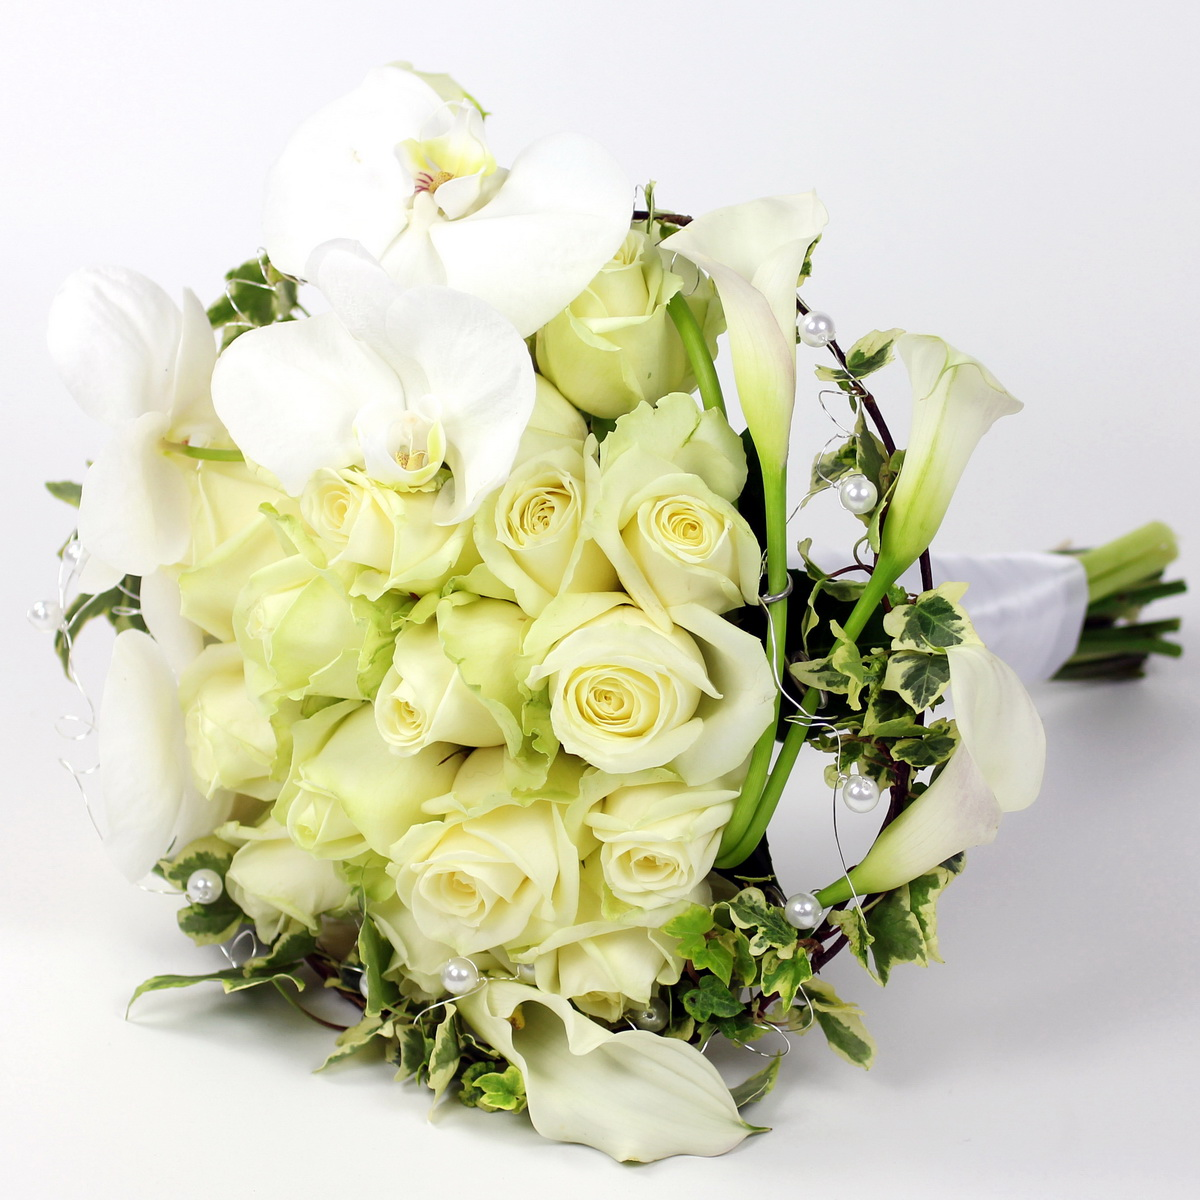 Moonlight Moments_resize wedding bouquet wedding florist london bridal flowers